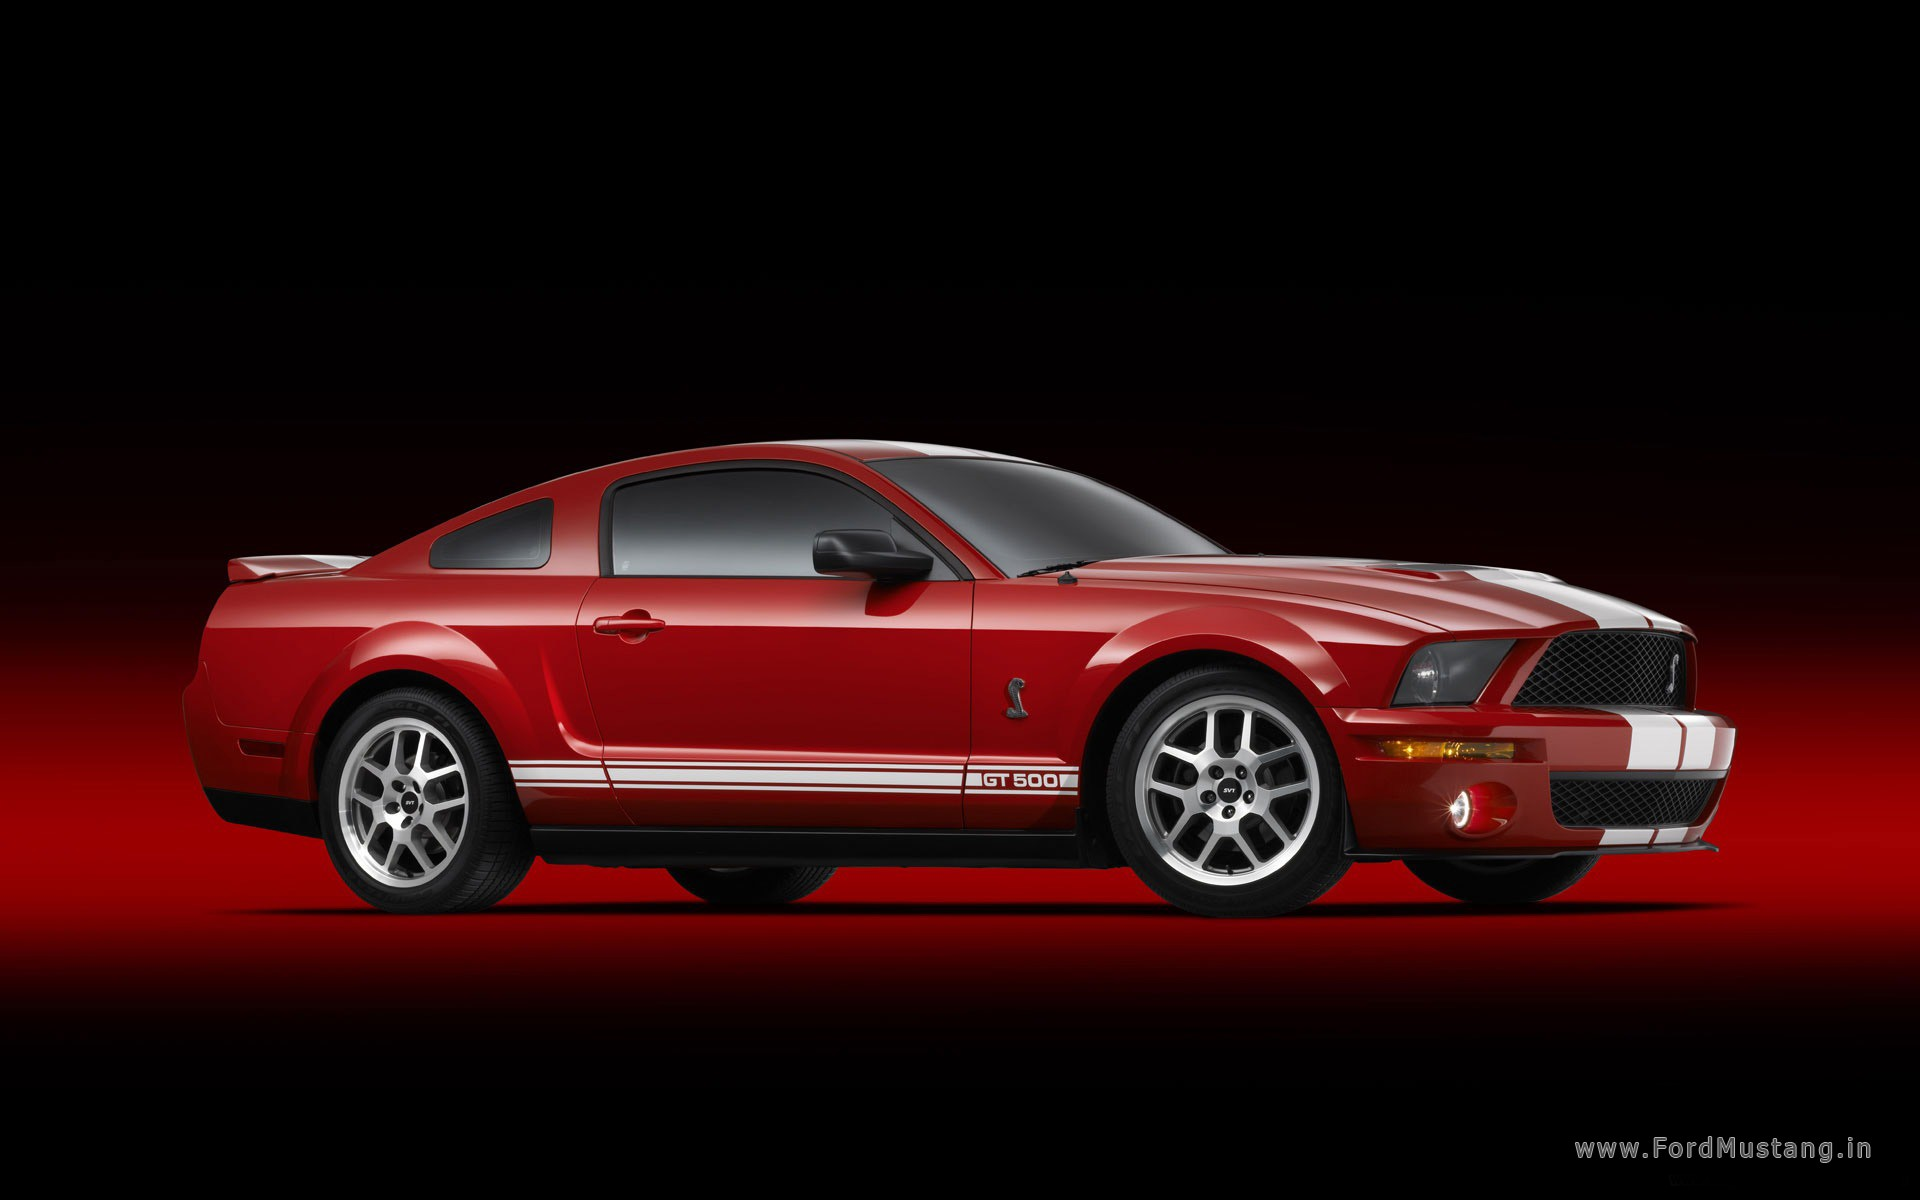 Ford Mustang 2007 foto - 5